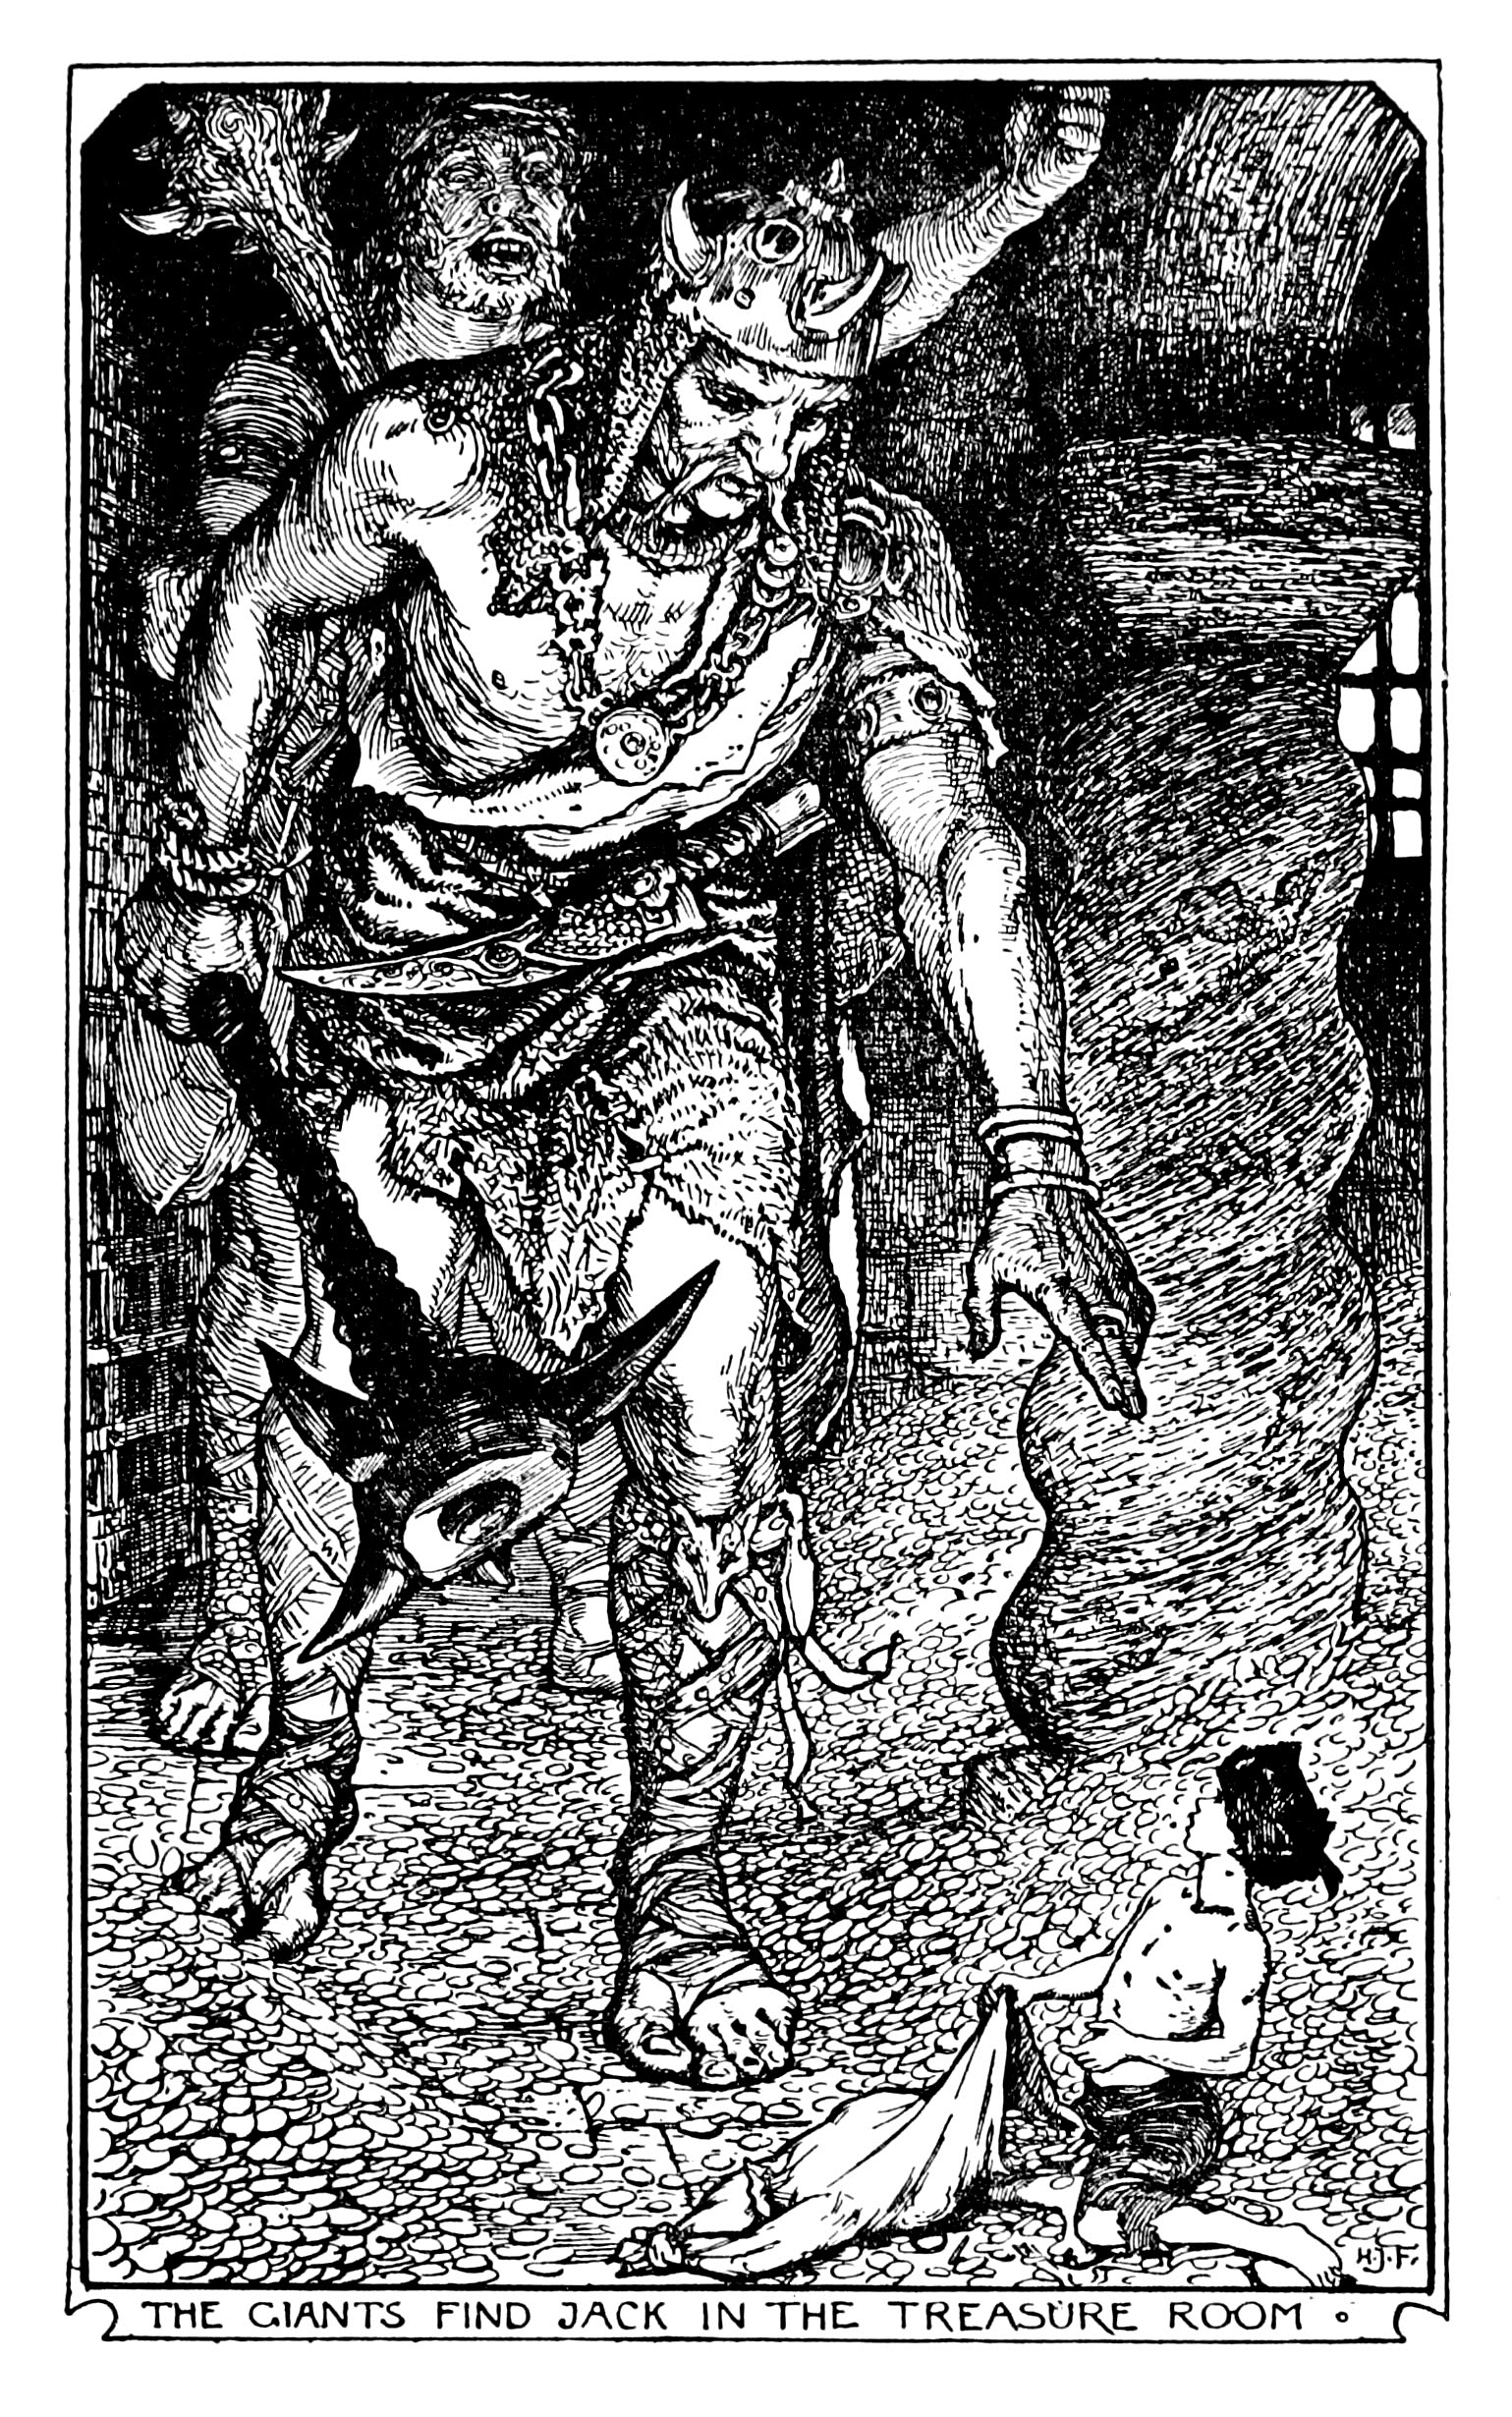 Henry Justice Ford - The orange fairy book edited by Andrew Lang , 1906 (illustration 6)